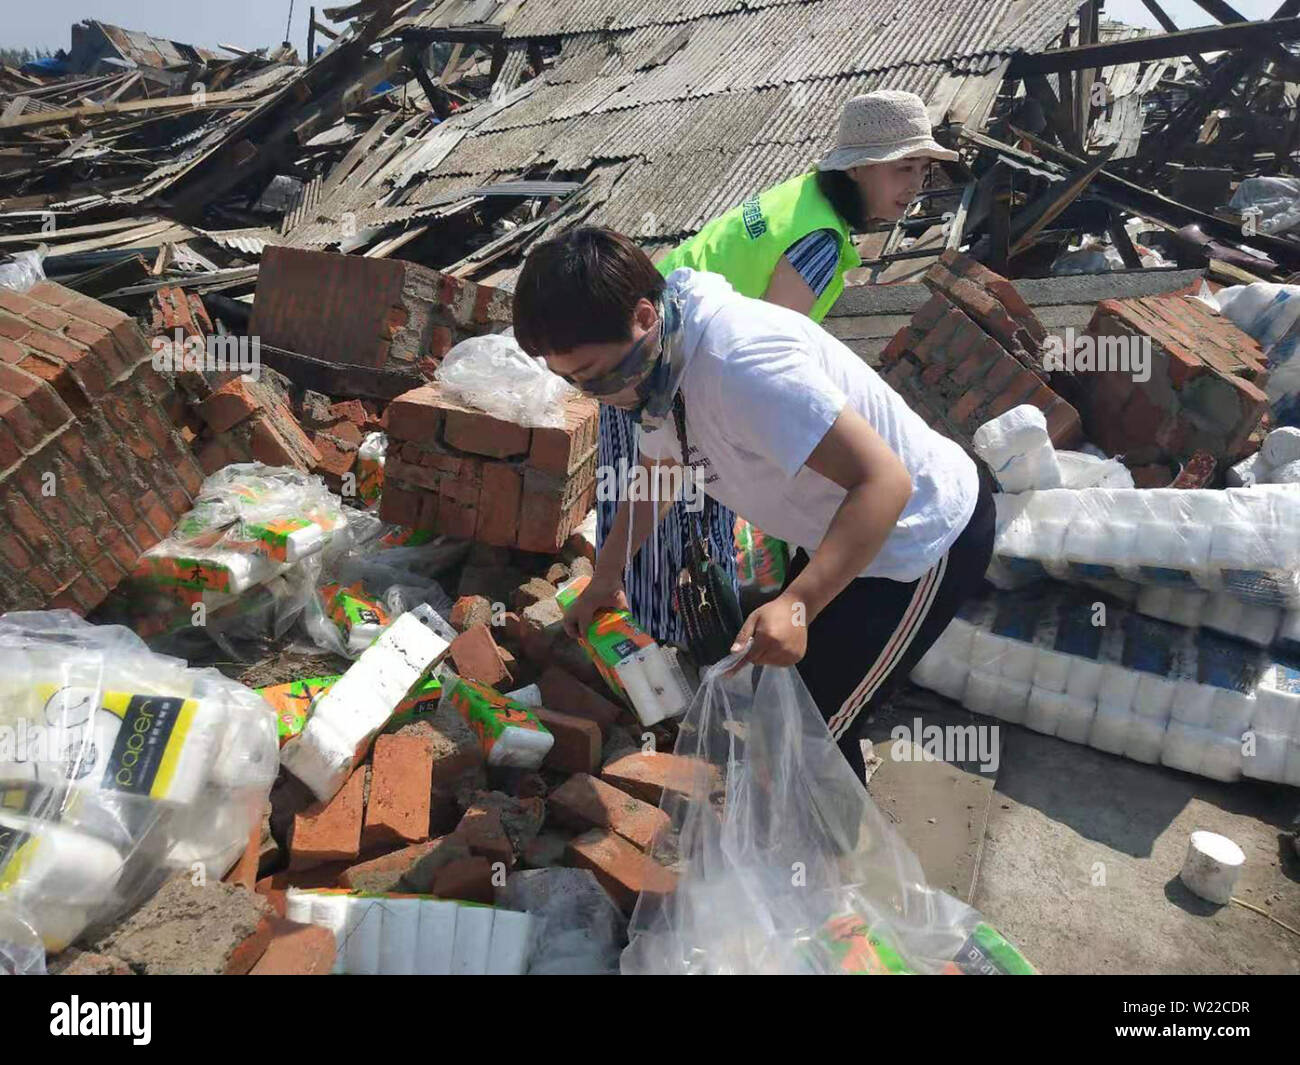 Liaoning, Liaoning, China. 5th July, 2019. Liaoning, China - July 4 2019: A tornado hit more than half of the city of kaiyuan, liaoning province, on July 3, 2019.Six people were killed and more than 190 injured.On July 4, more than 20 volunteers helped pick up toilet paper at a private toilet paper factory to minimize losses. Credit: SIPA Asia/ZUMA Wire/Alamy Live News - Stock Image